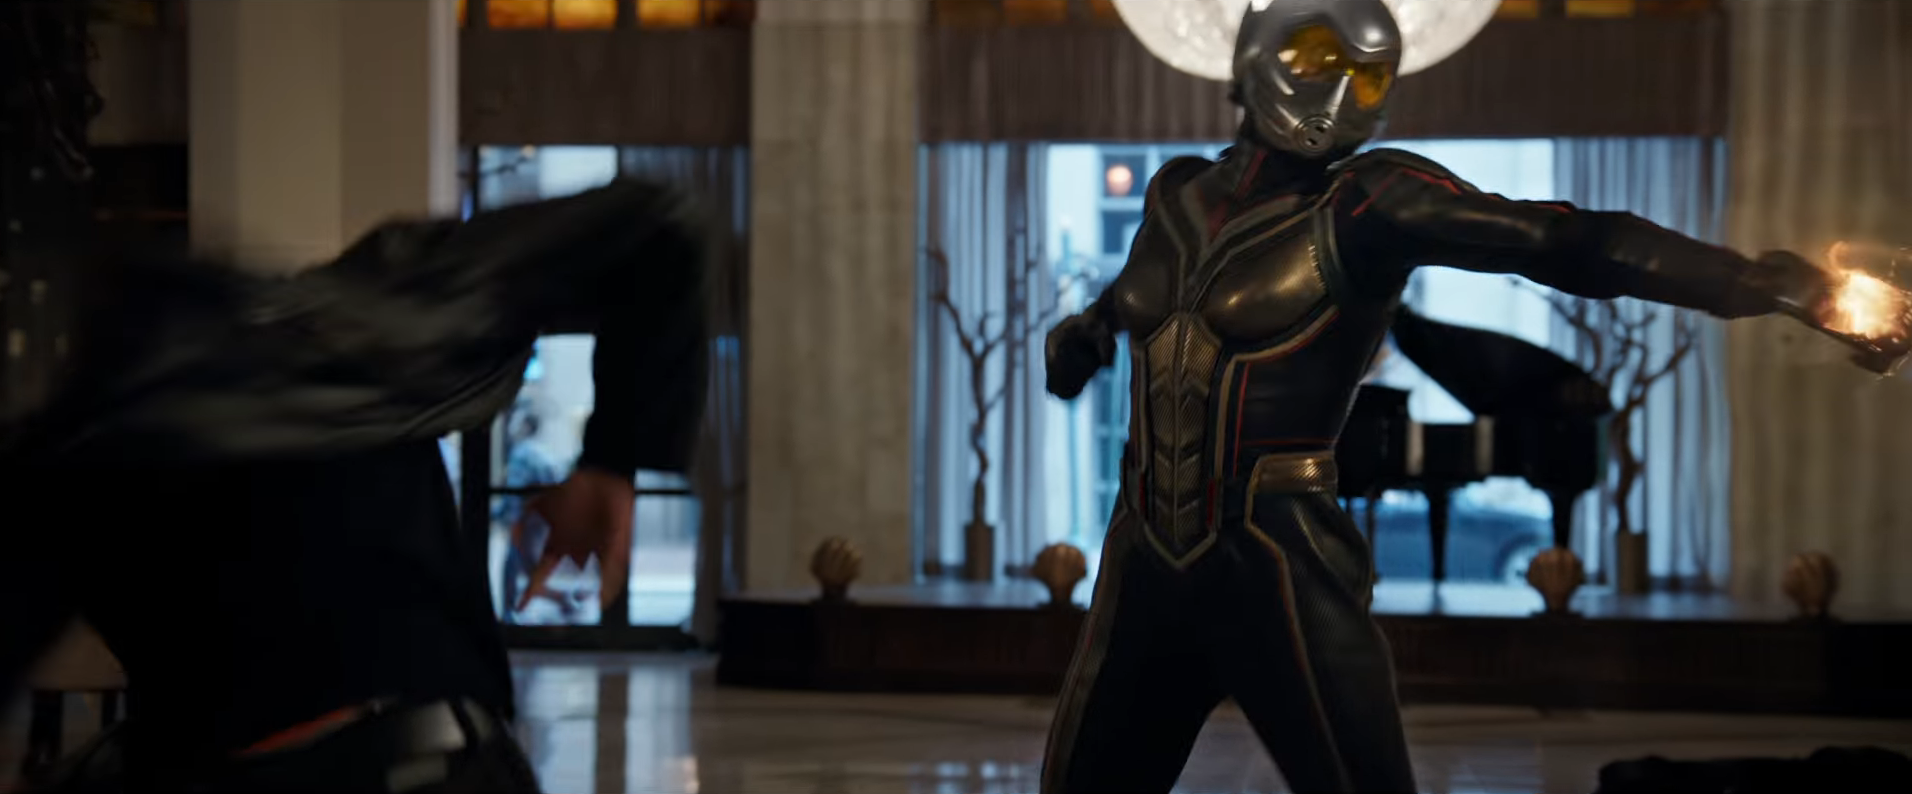 AntMan and the Wasp Fans Clap Back at Sexist Tweet